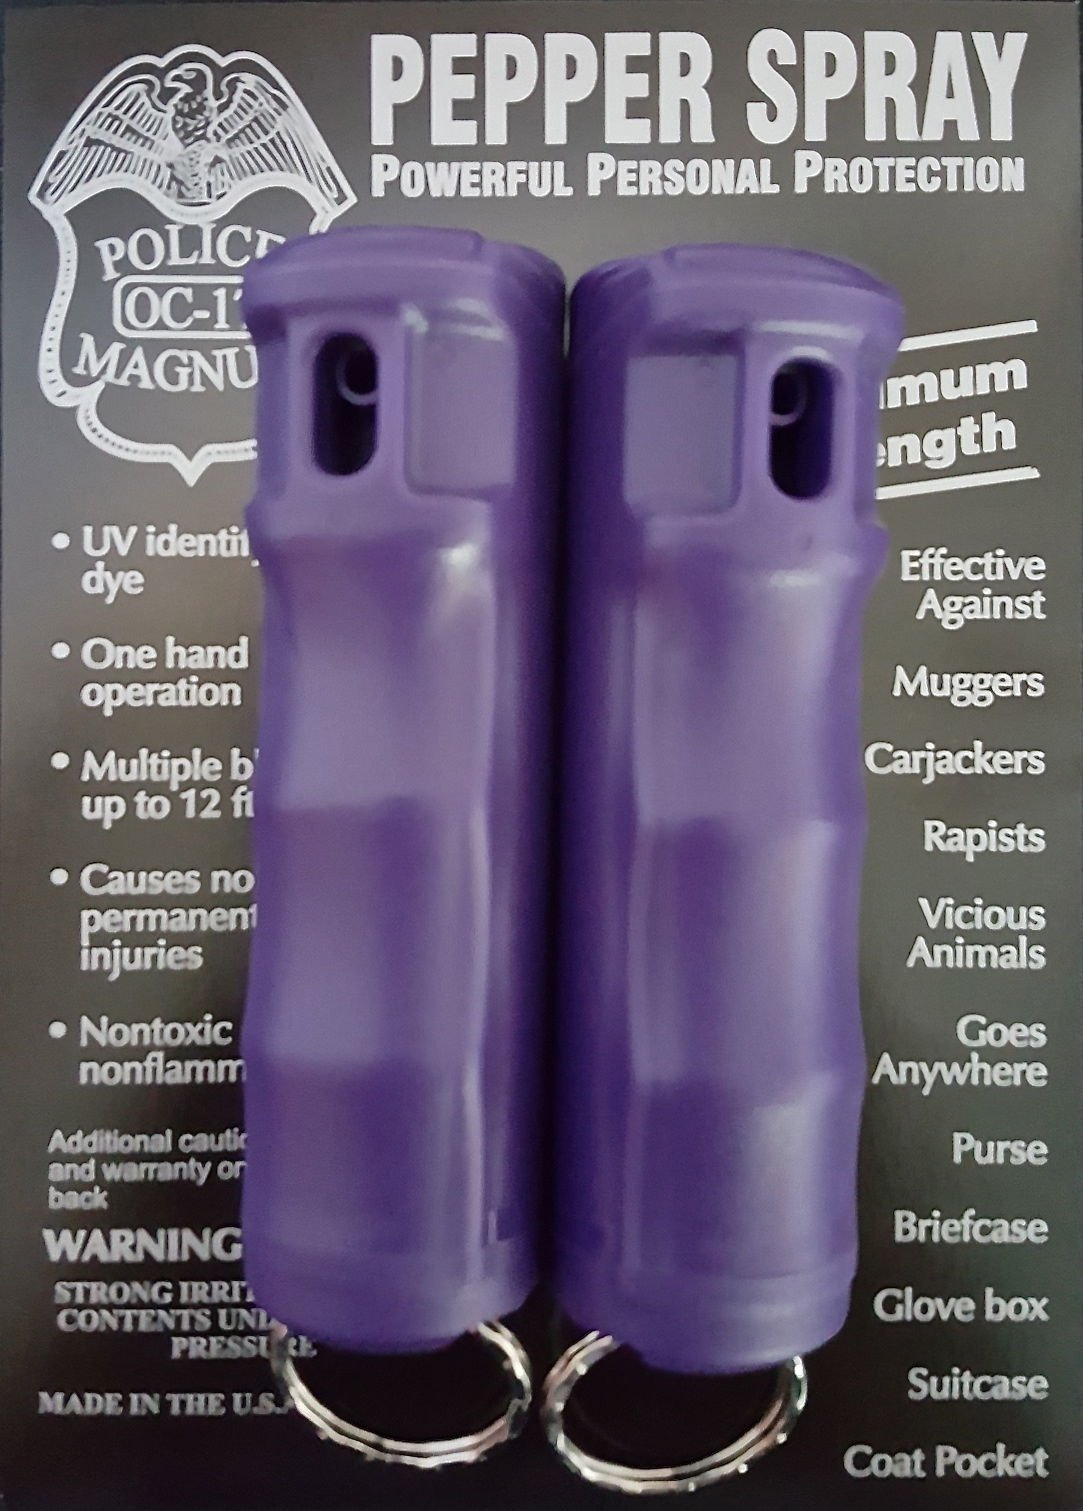 2 POLICE MAGNUM PEPPER SPRAY 1/2oz PURPLE Flip Top Molded Keychain Security Self Defense Police Strength by Police